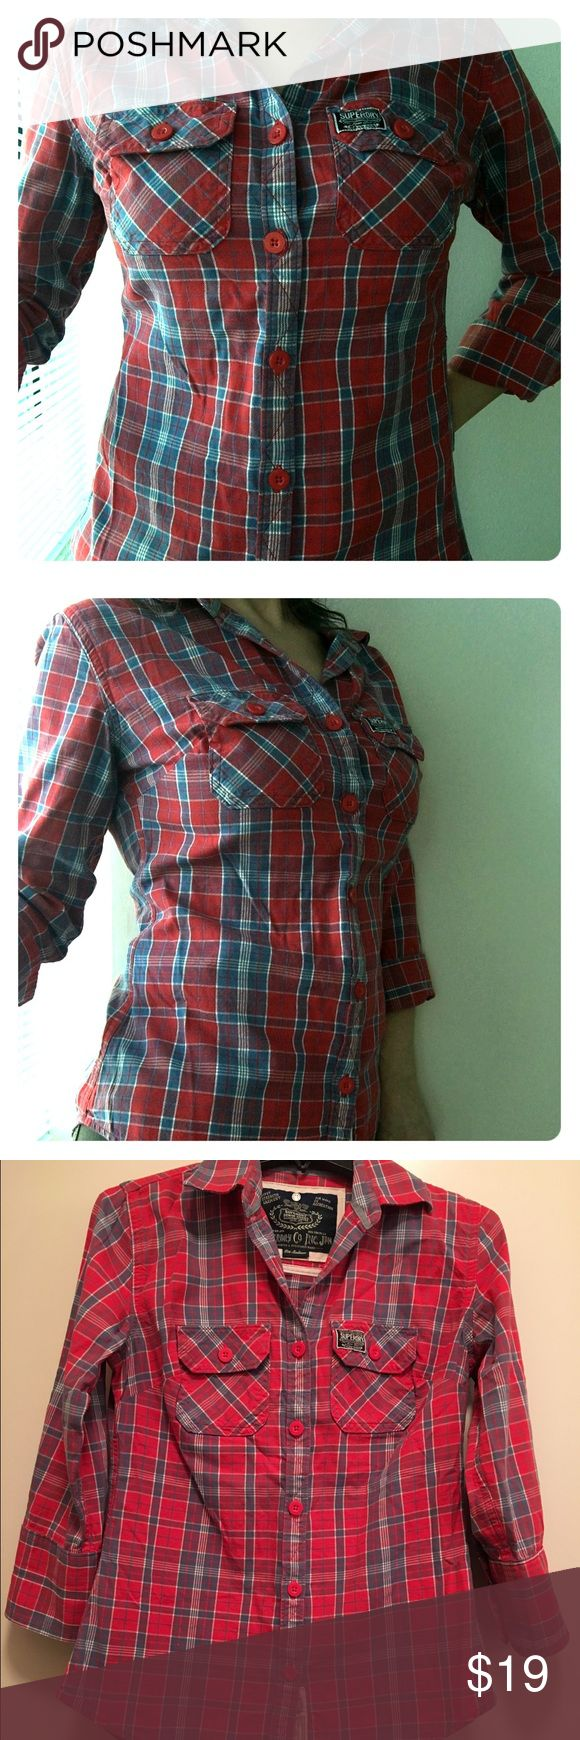 SUPERDRY Plaid Button Down Shirt : Lumberjack SUPERDRY Plaid Button down shirt. 3/4 sleeve w/ front pockets. Runs small. Superdry Tops Button Down Shirts